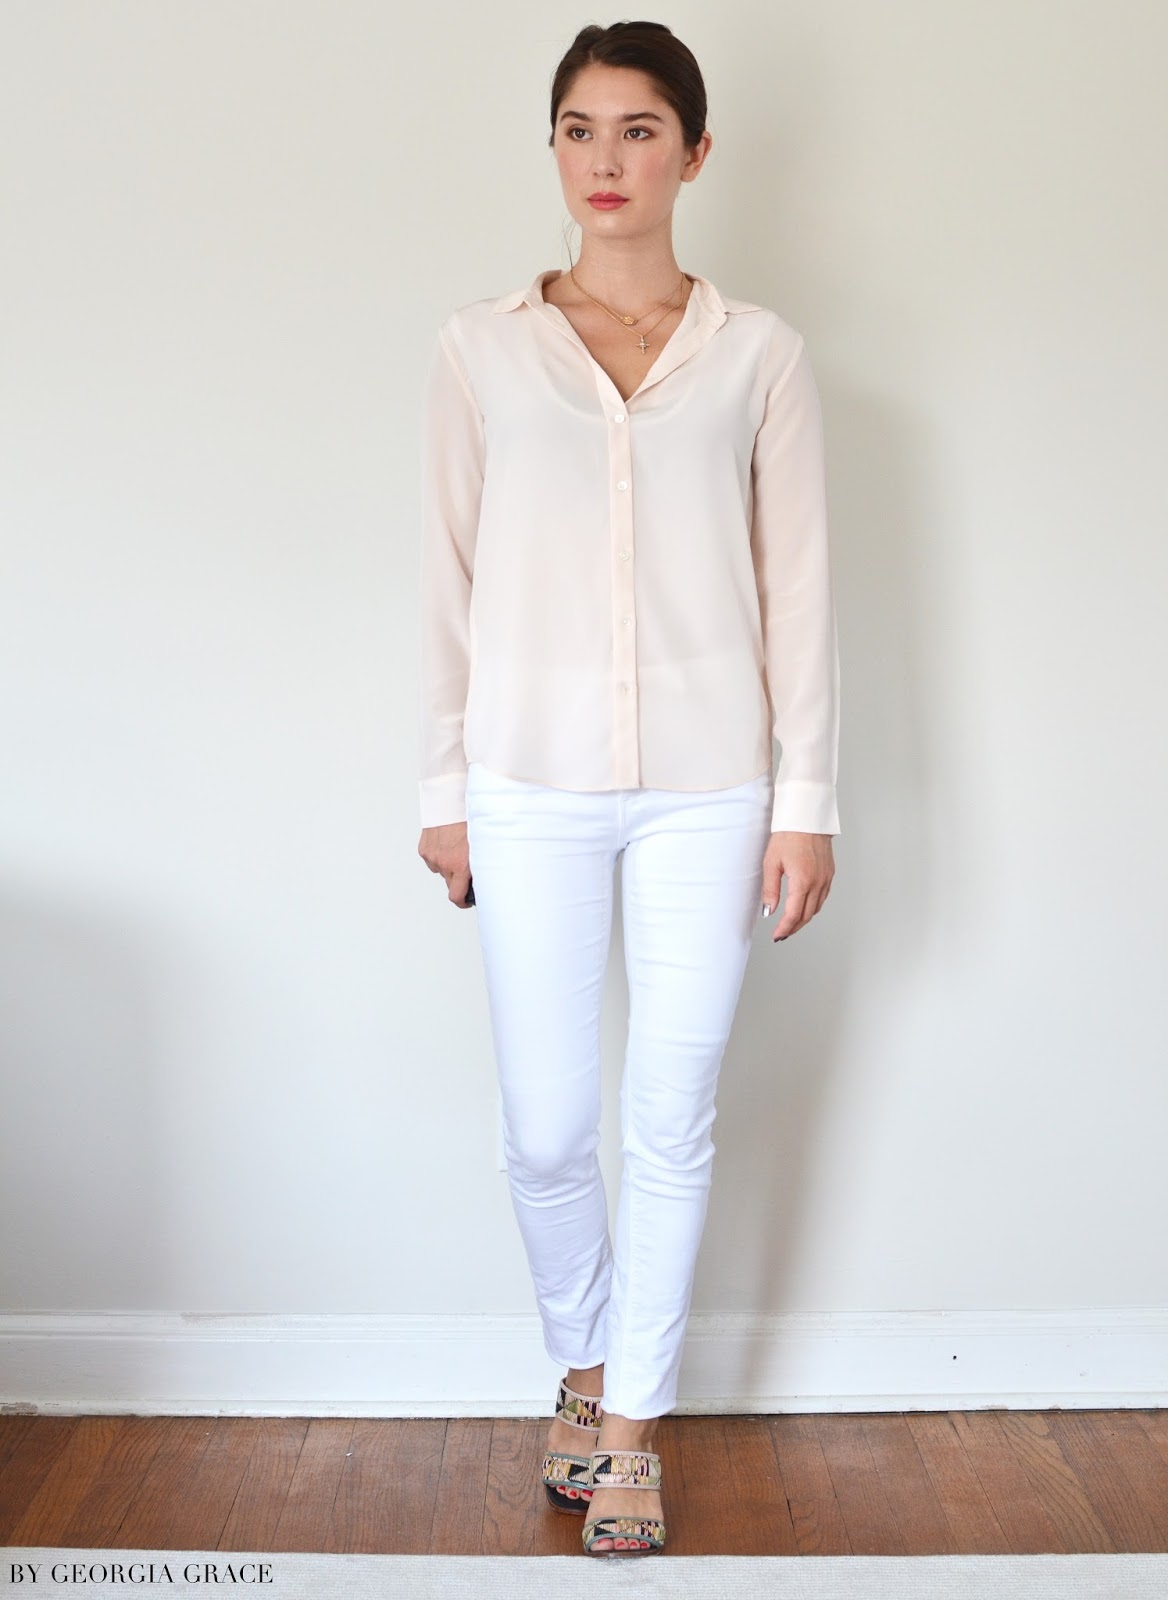 f334c95c I got the Slim Silk Shirt ($78) in Pale Pink, size 00, and it's a perfect  fit for my 100 lbs., 5'2″ petite frame. The shirt is a slimmer, ...